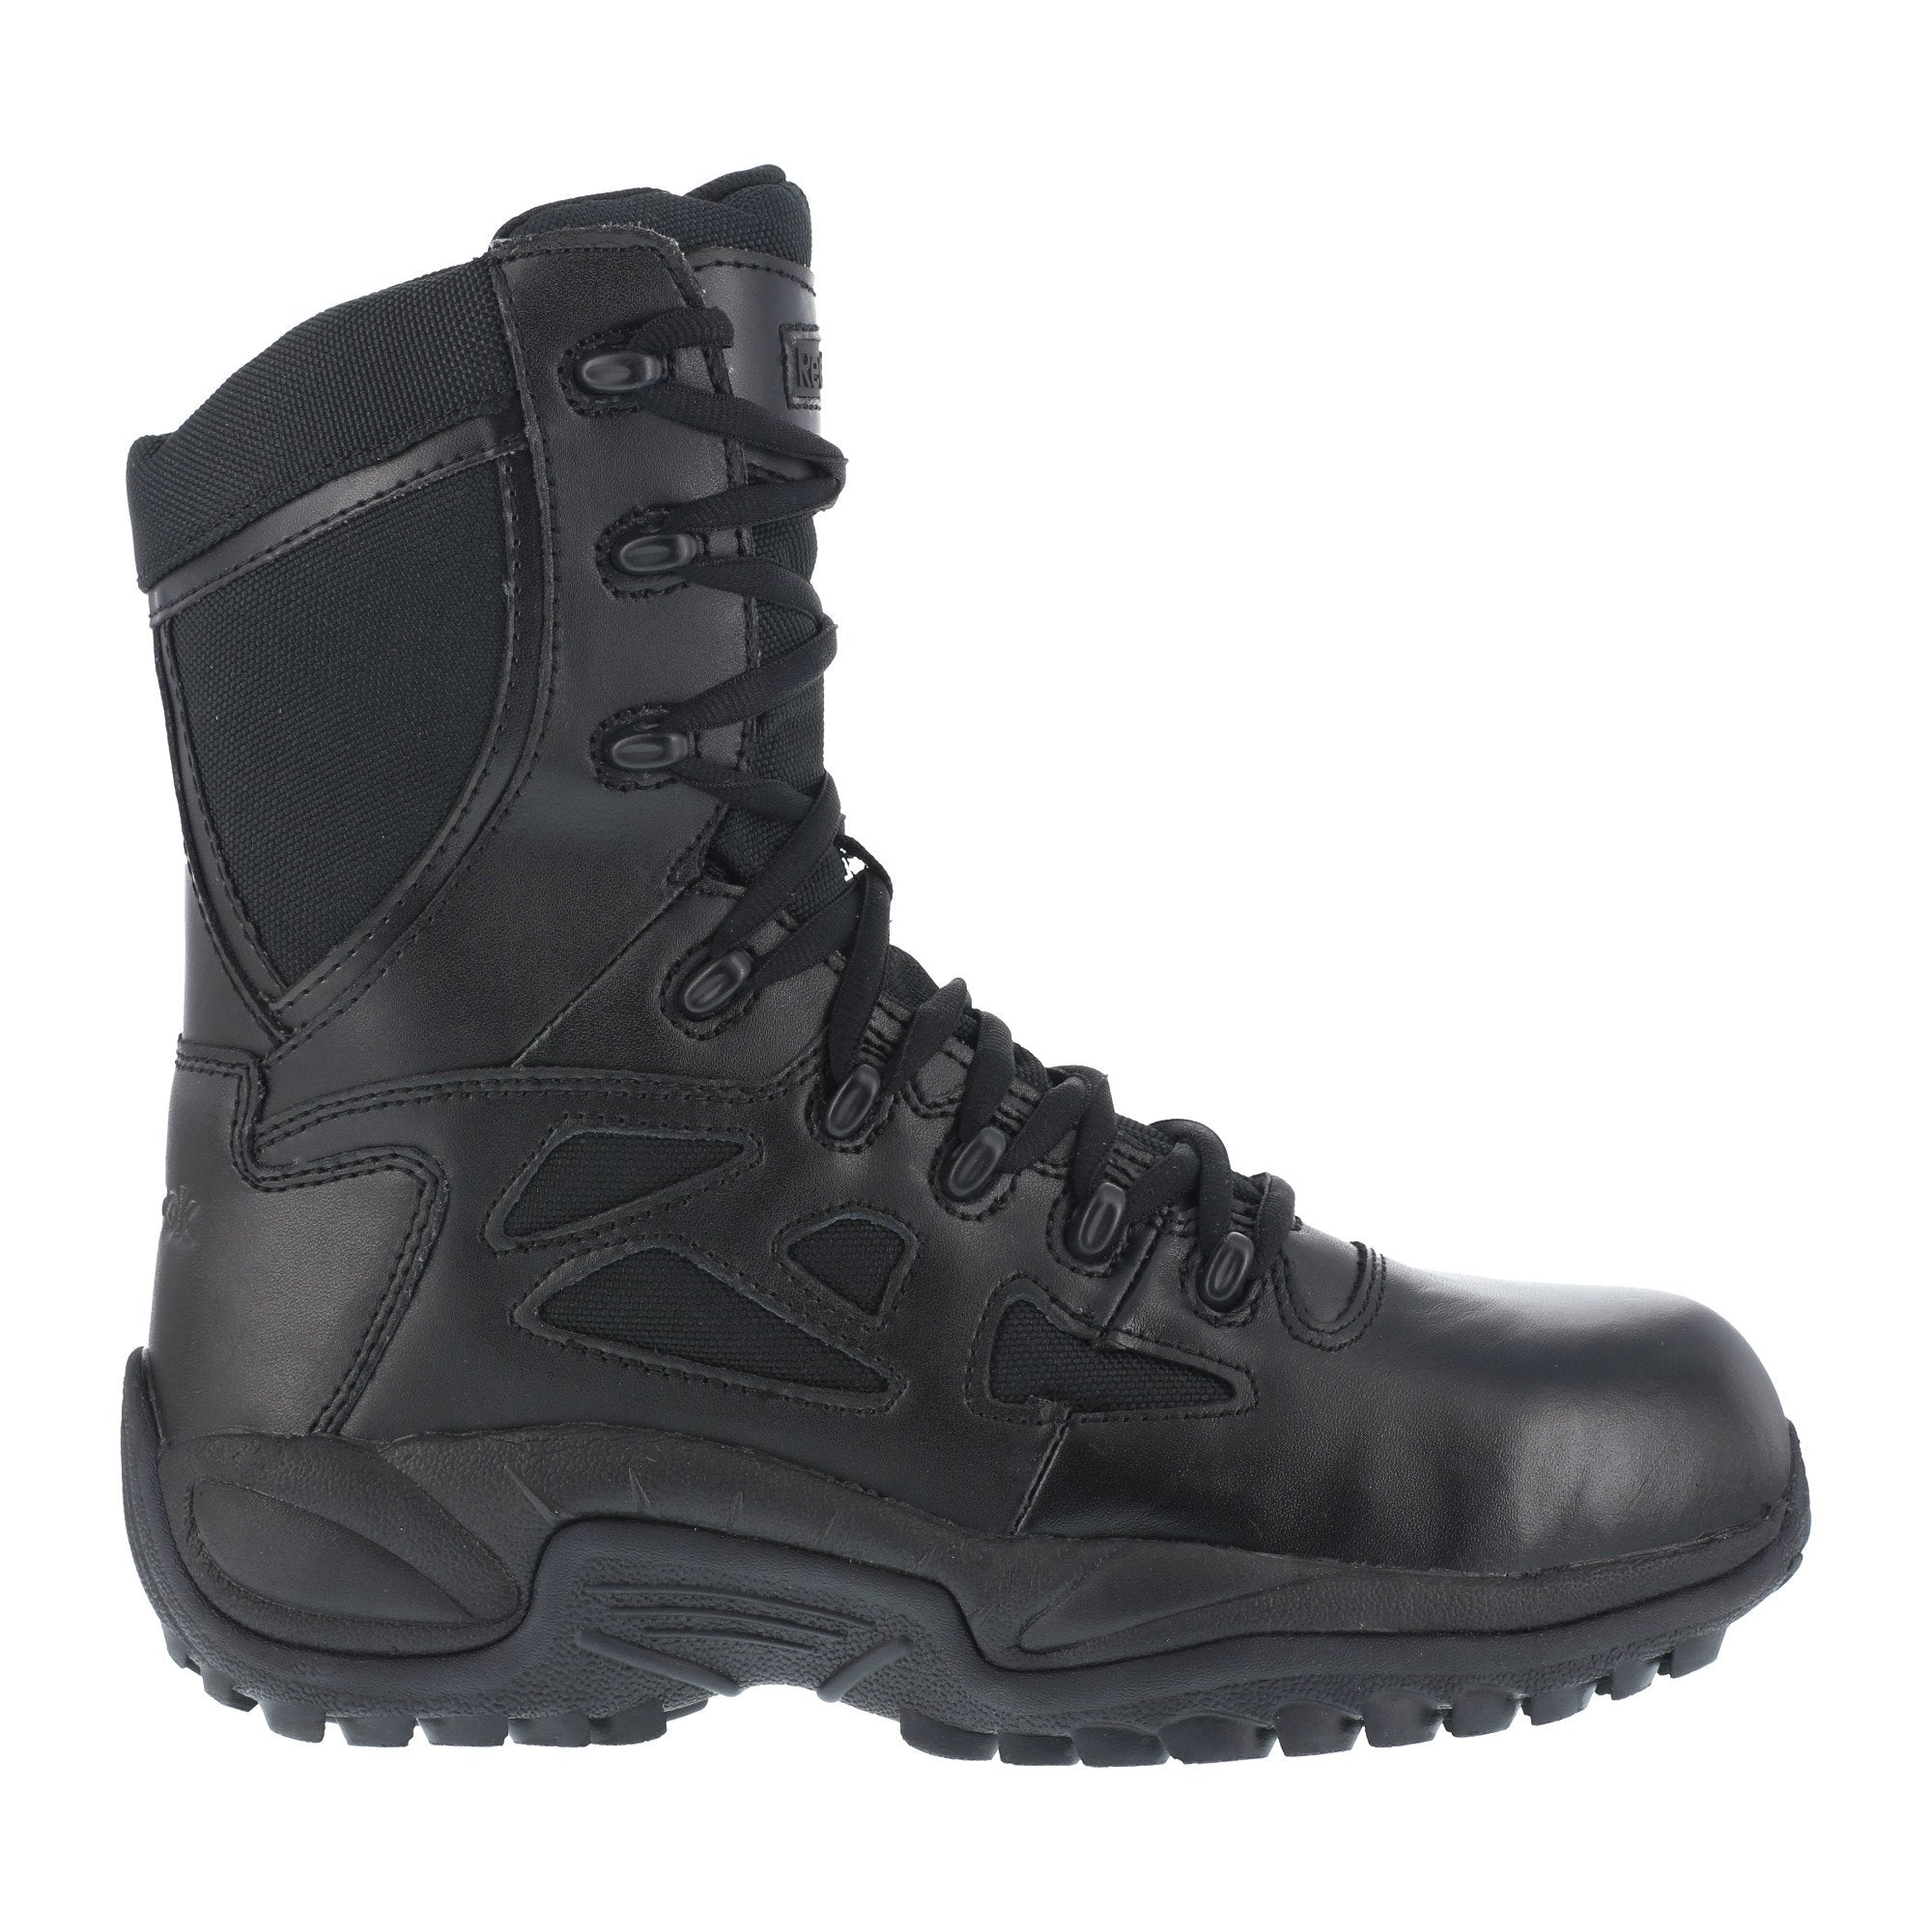 super quality wholesale clearance sale Reebok Mens Black Leather Tactical Boots Rapid Response RB ...